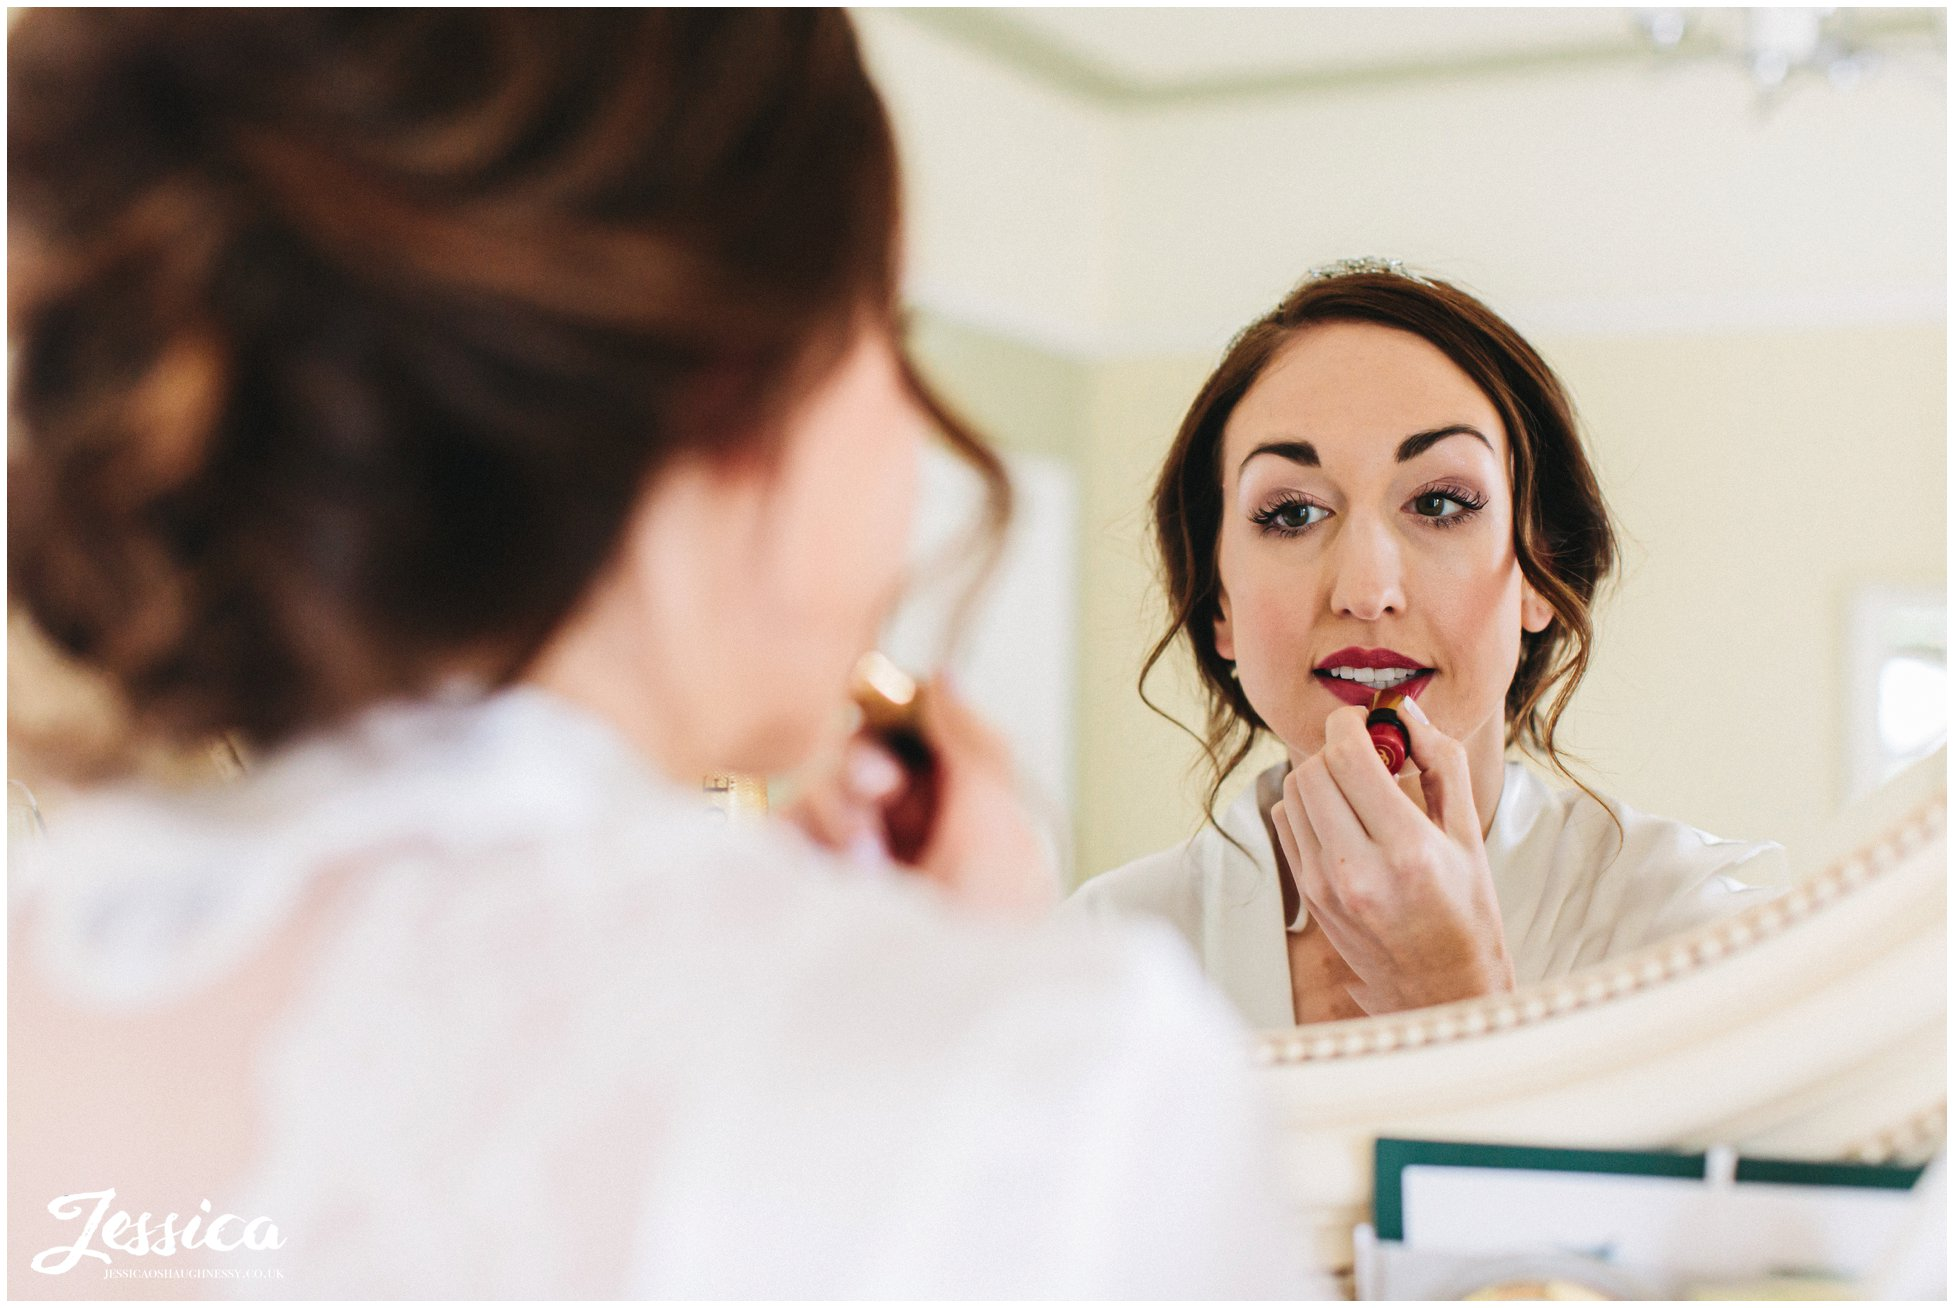 the bride applies red lipstick in the mirror